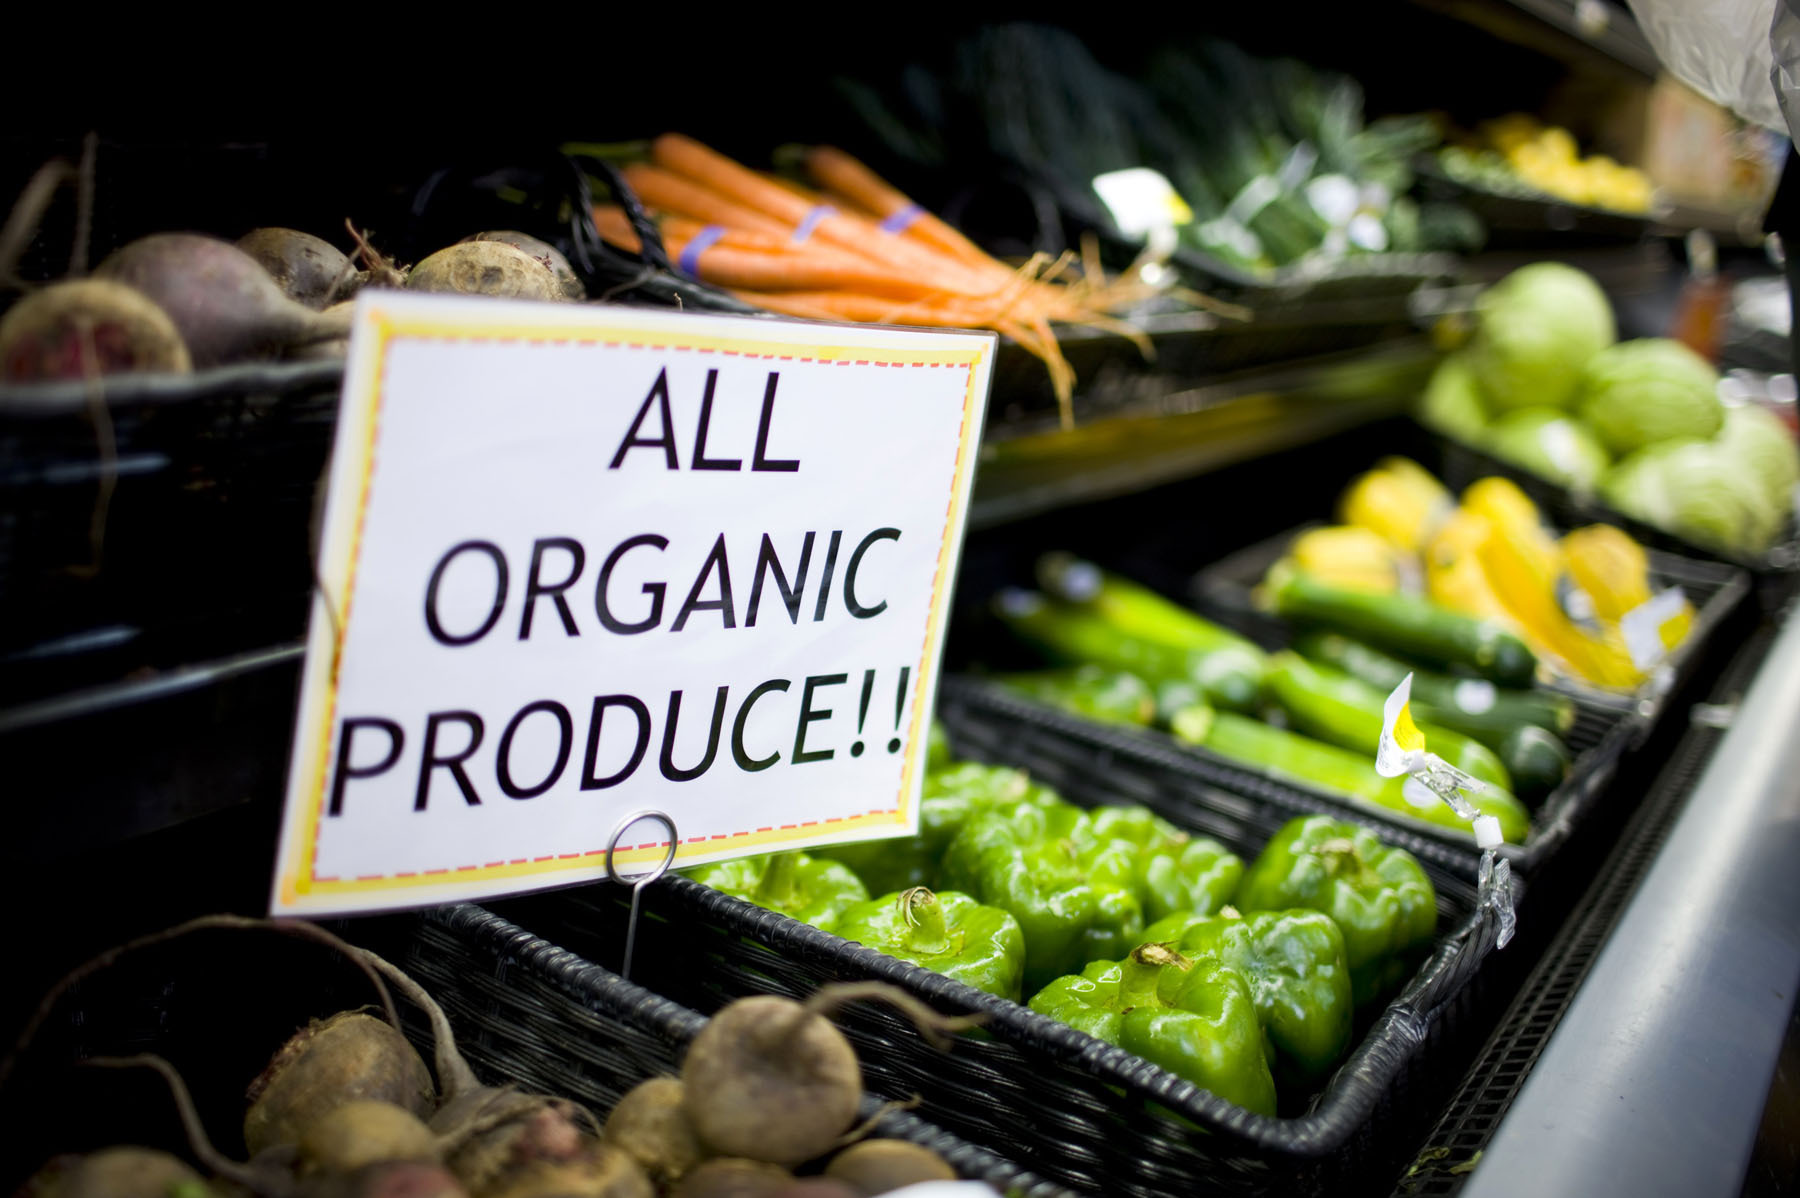 Investigators at the U.S. Department of Agriculture have discovered cases of organic fraud abroad as well as in the U.S. In 2013, 19 farmers or food companies were fined a total of $87 million for misusing the organic label. Photo: Mark Andersen/Rubberball/Corbi